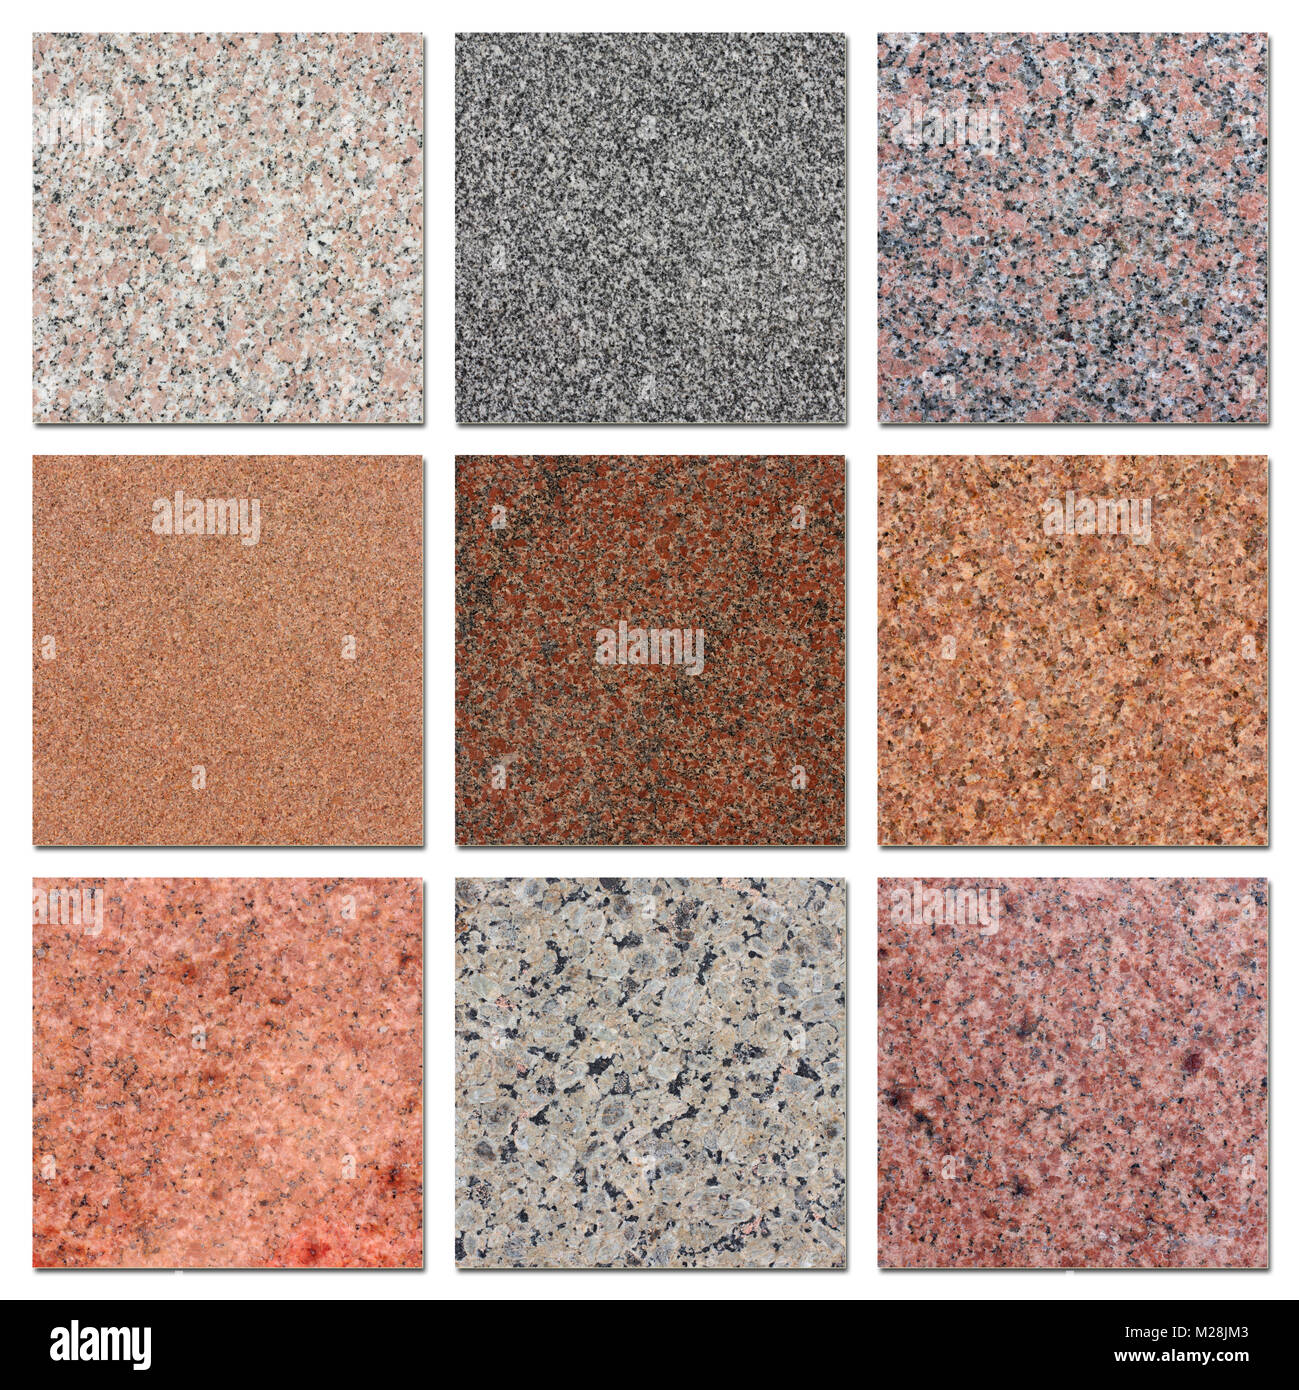 The Samples Of Egyptian Granite